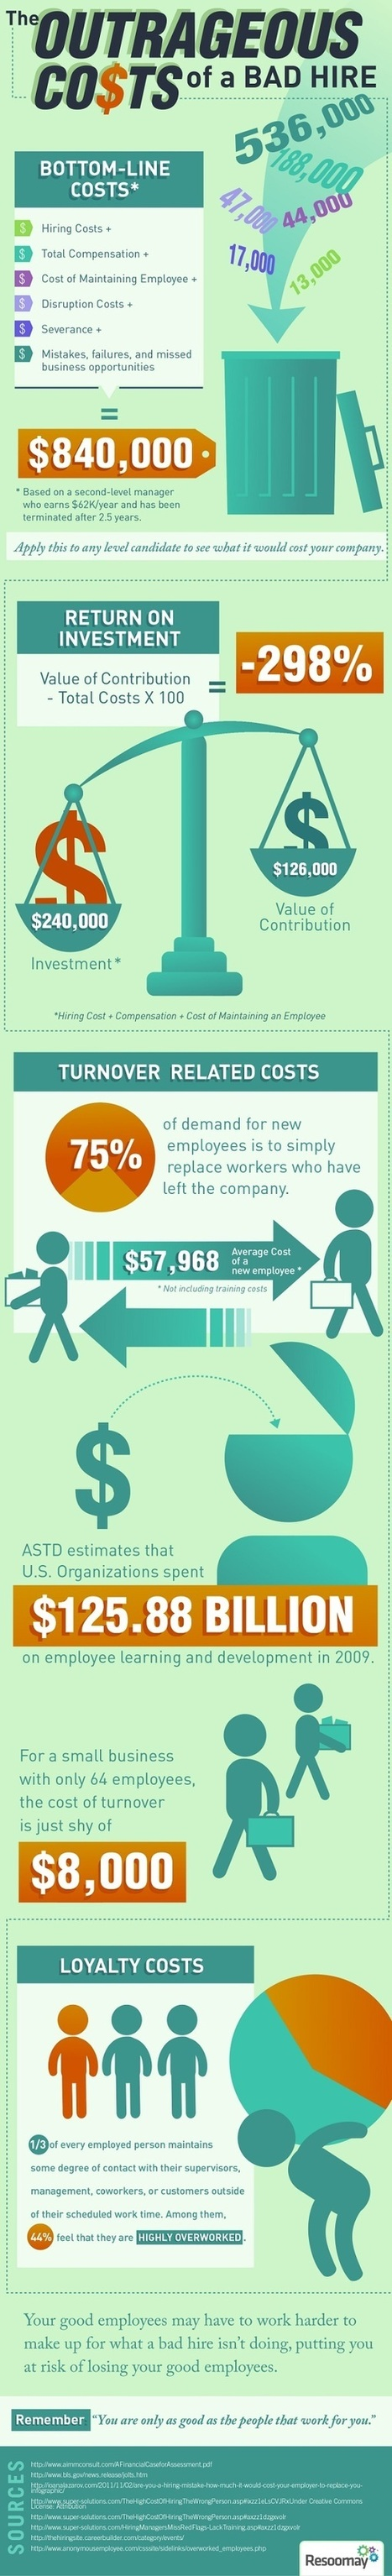 The Baffling Costs Of A Bad Hire For Employers [INFOGRAPHIC] | Harmonious and Balanced Workplace | Scoop.it